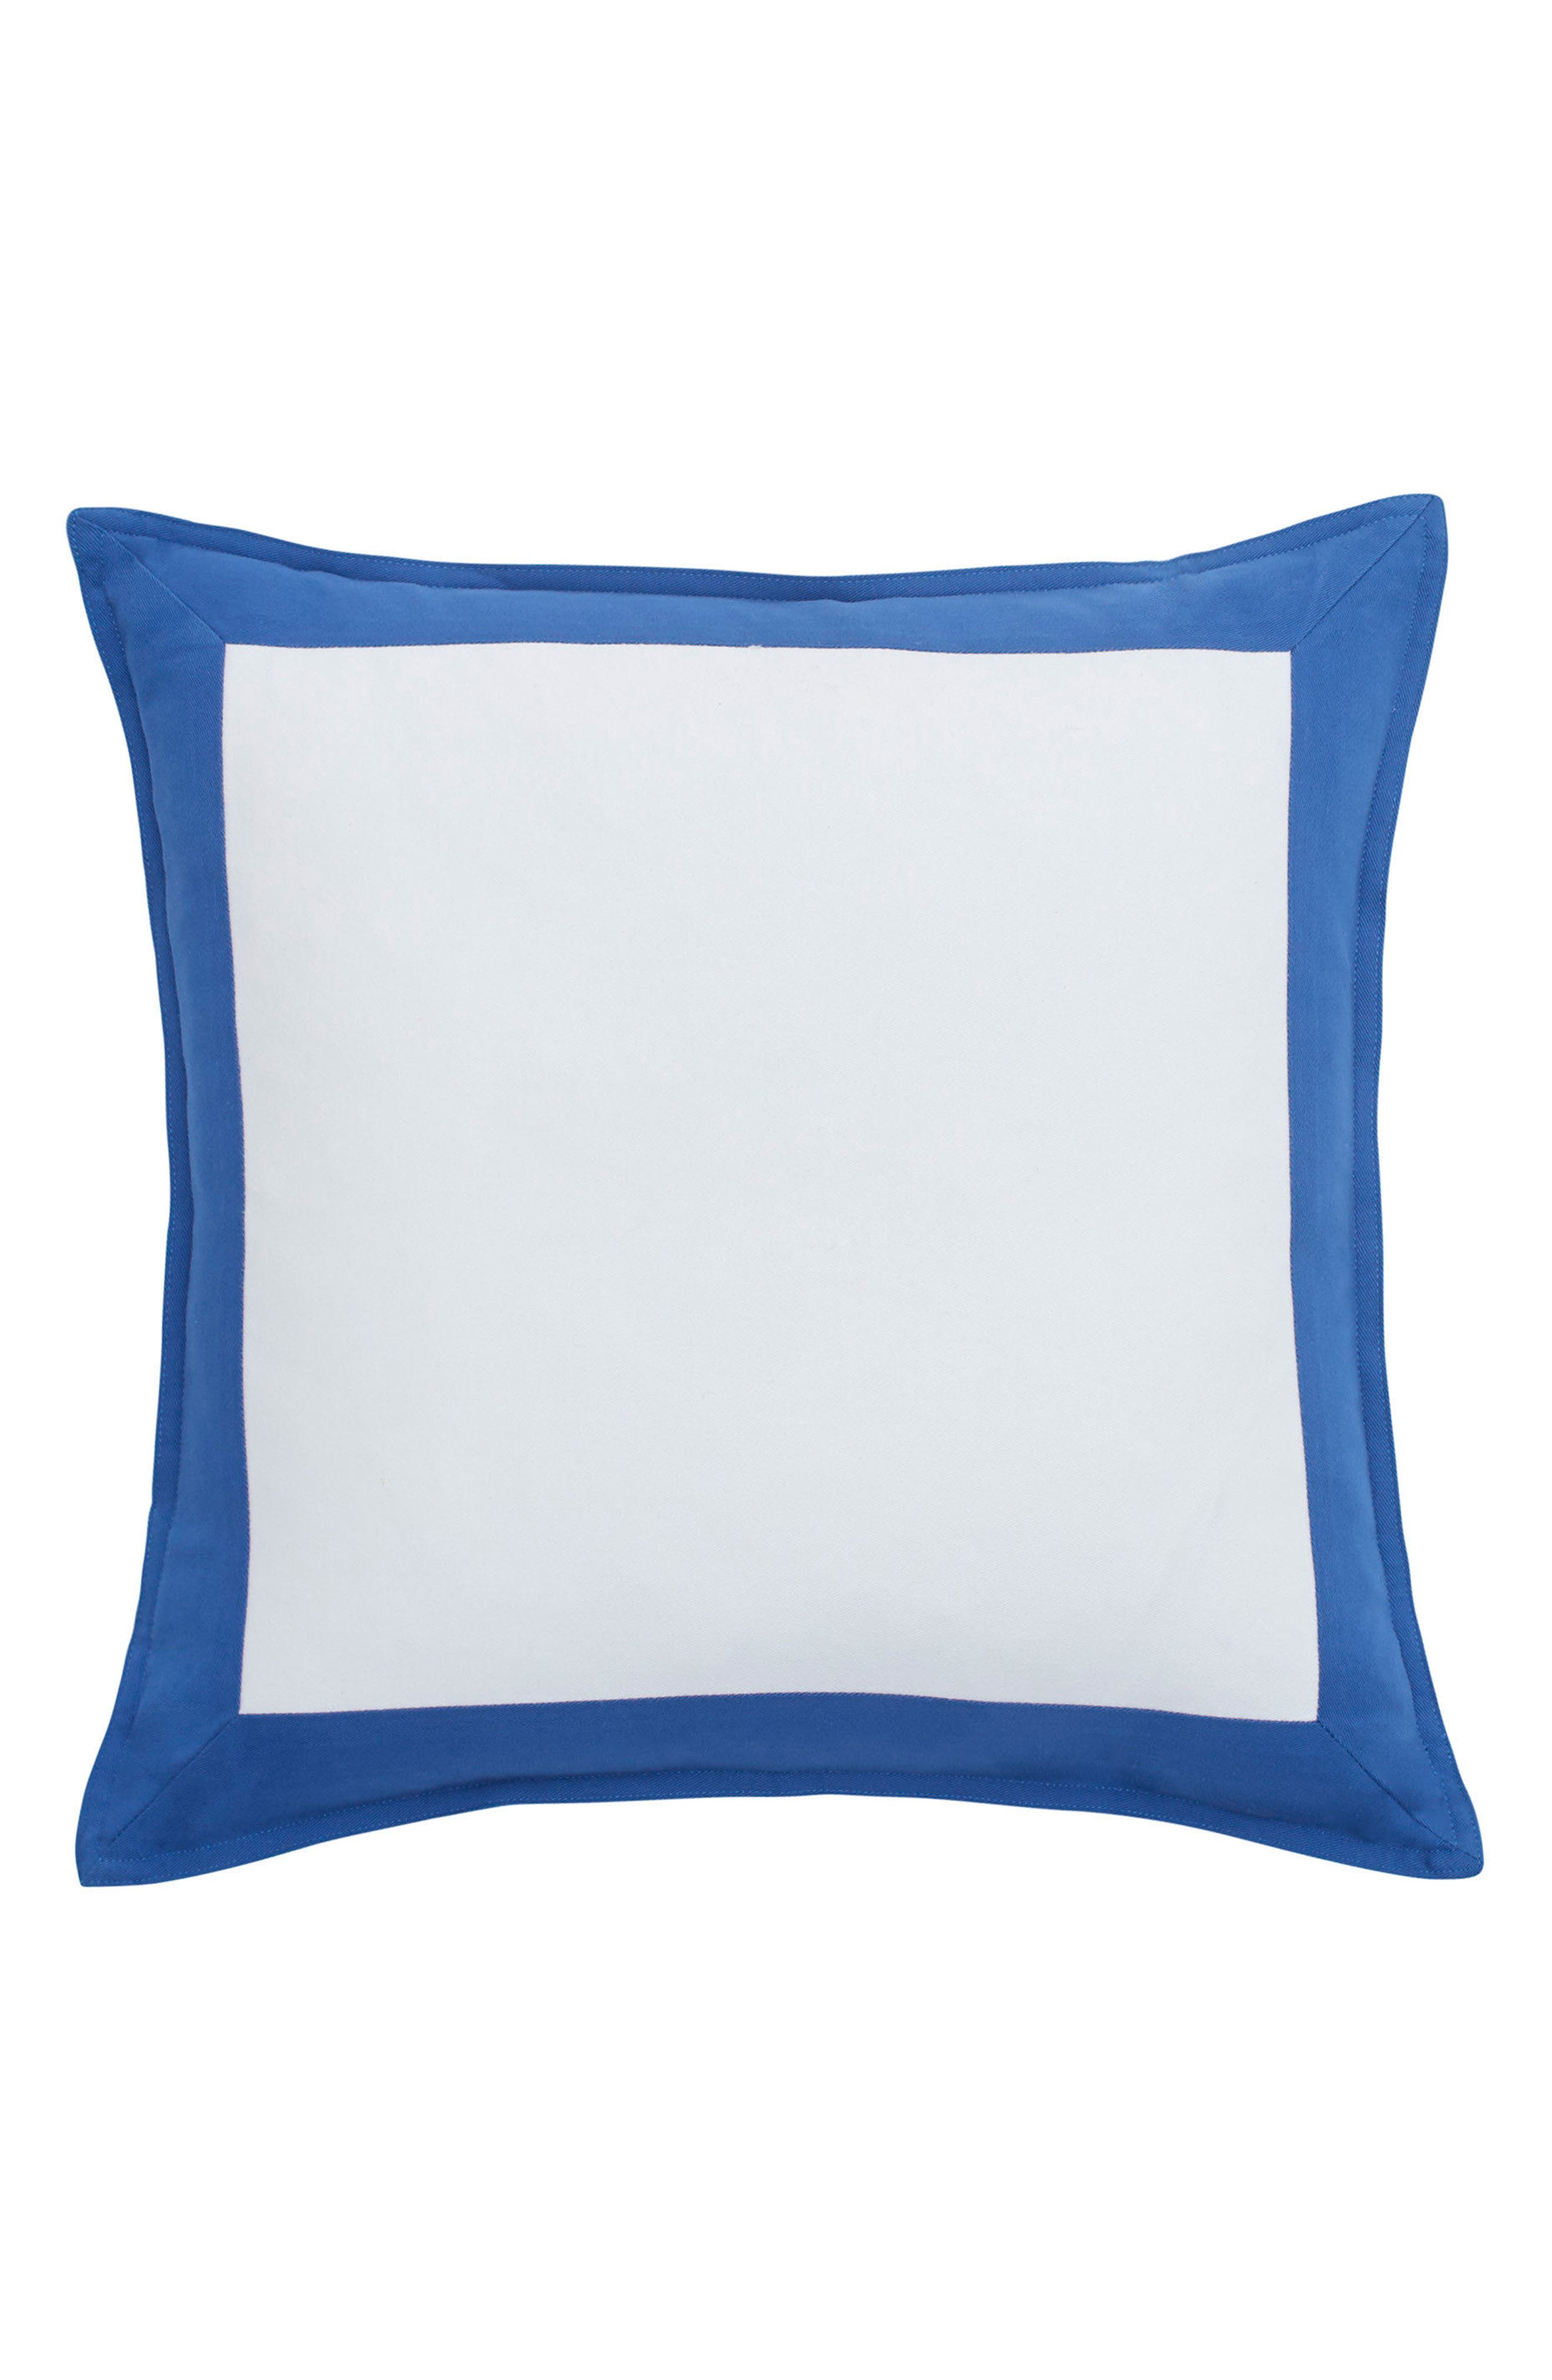 Alternate Image 1 Selected - Southern Tide Skipjack Chino Accent Pillow